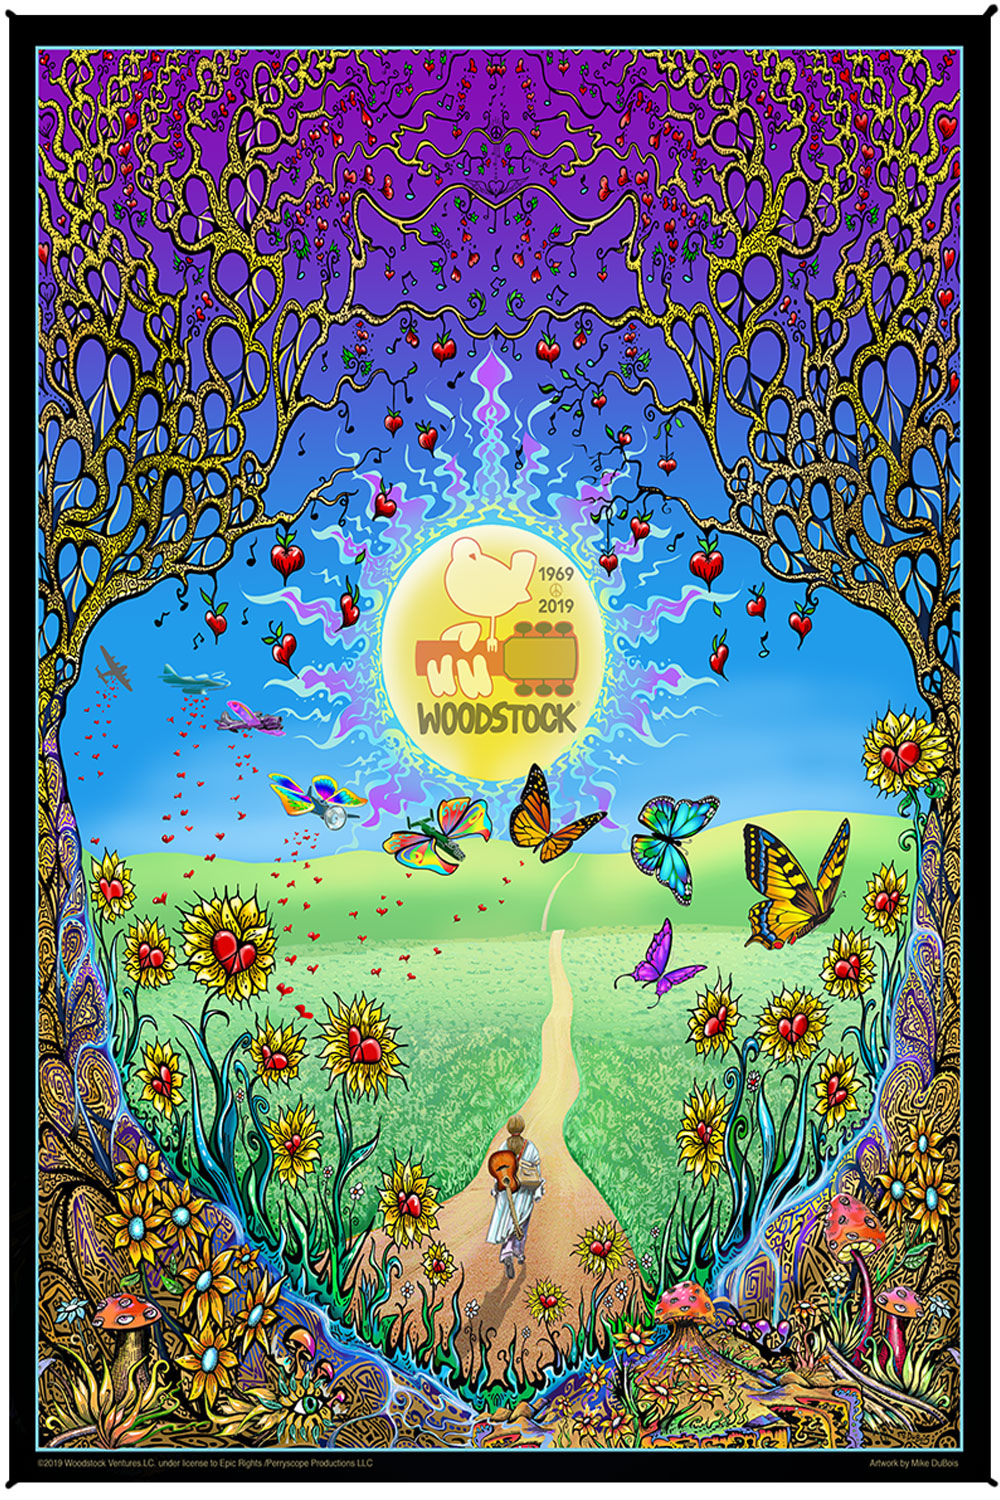 Woodstock Back To The Garden Heady Art Print Mini Tapestry 30x45 with FREE 3-D Glasses